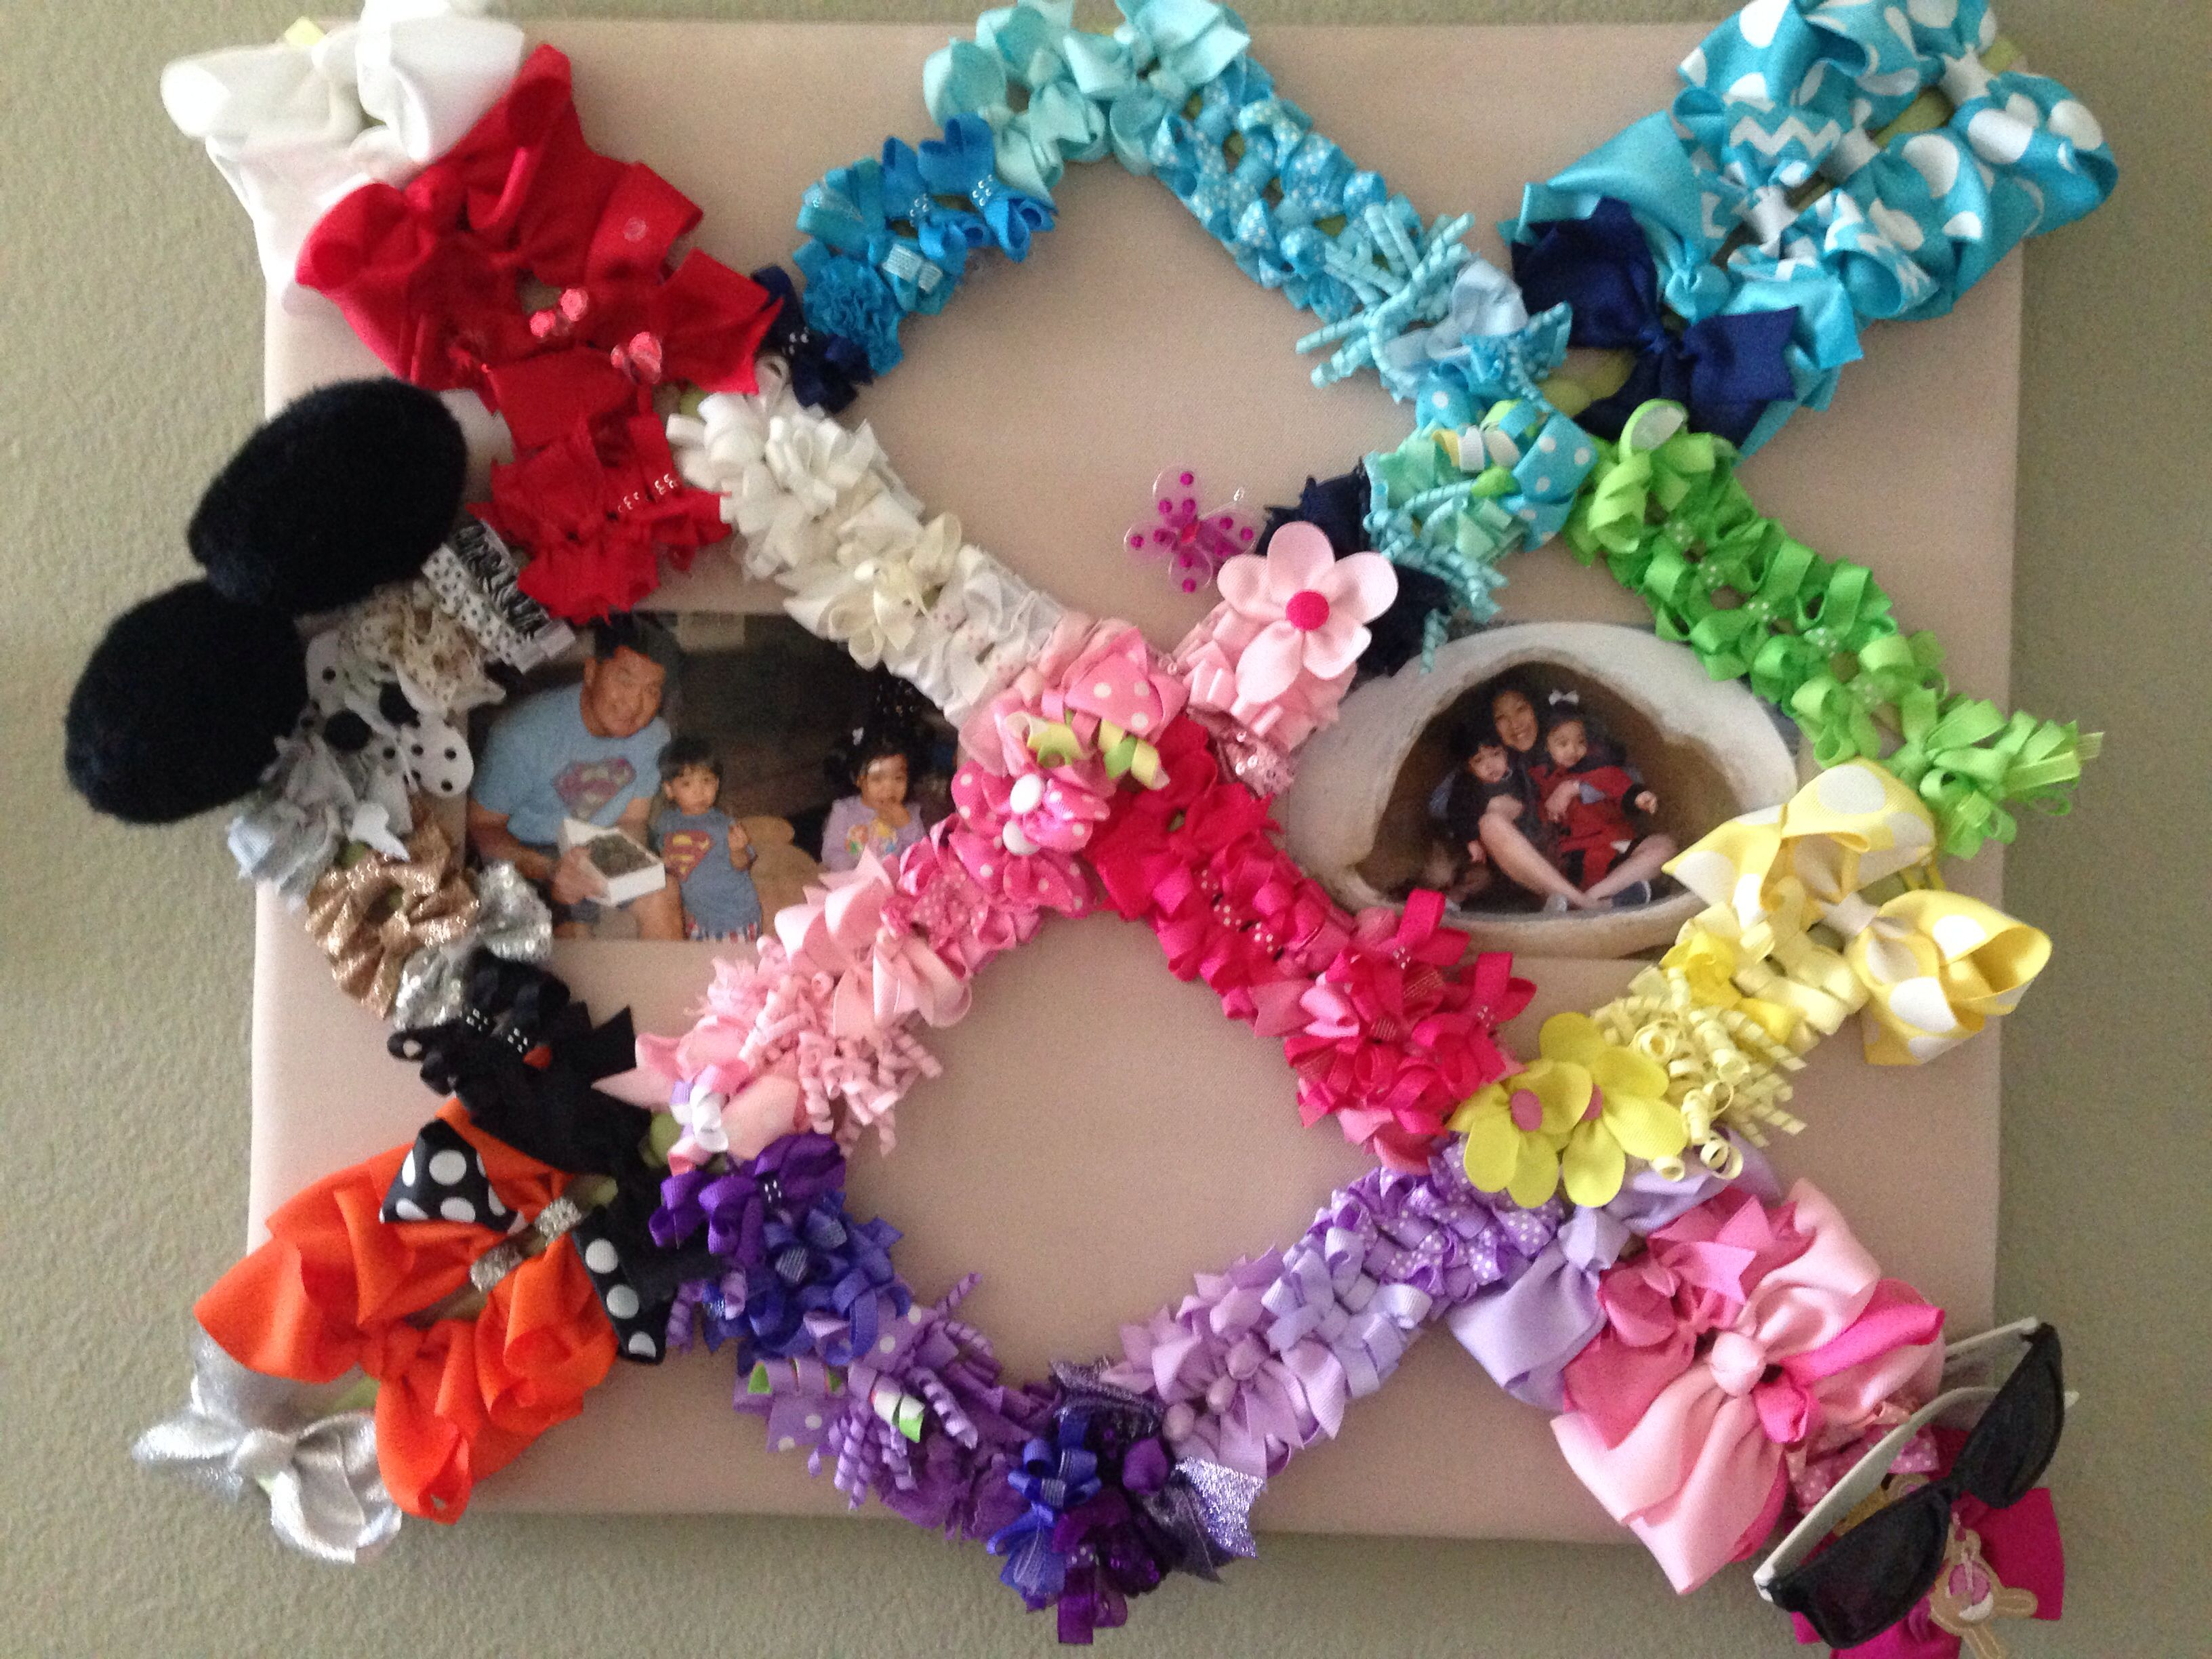 Displaying & organizing little girls hair bows! After trying so many different ways to keep my daughters bows organized I realized why not use one of my old photo ribbon holders! Works perfect & I can display photos as well!